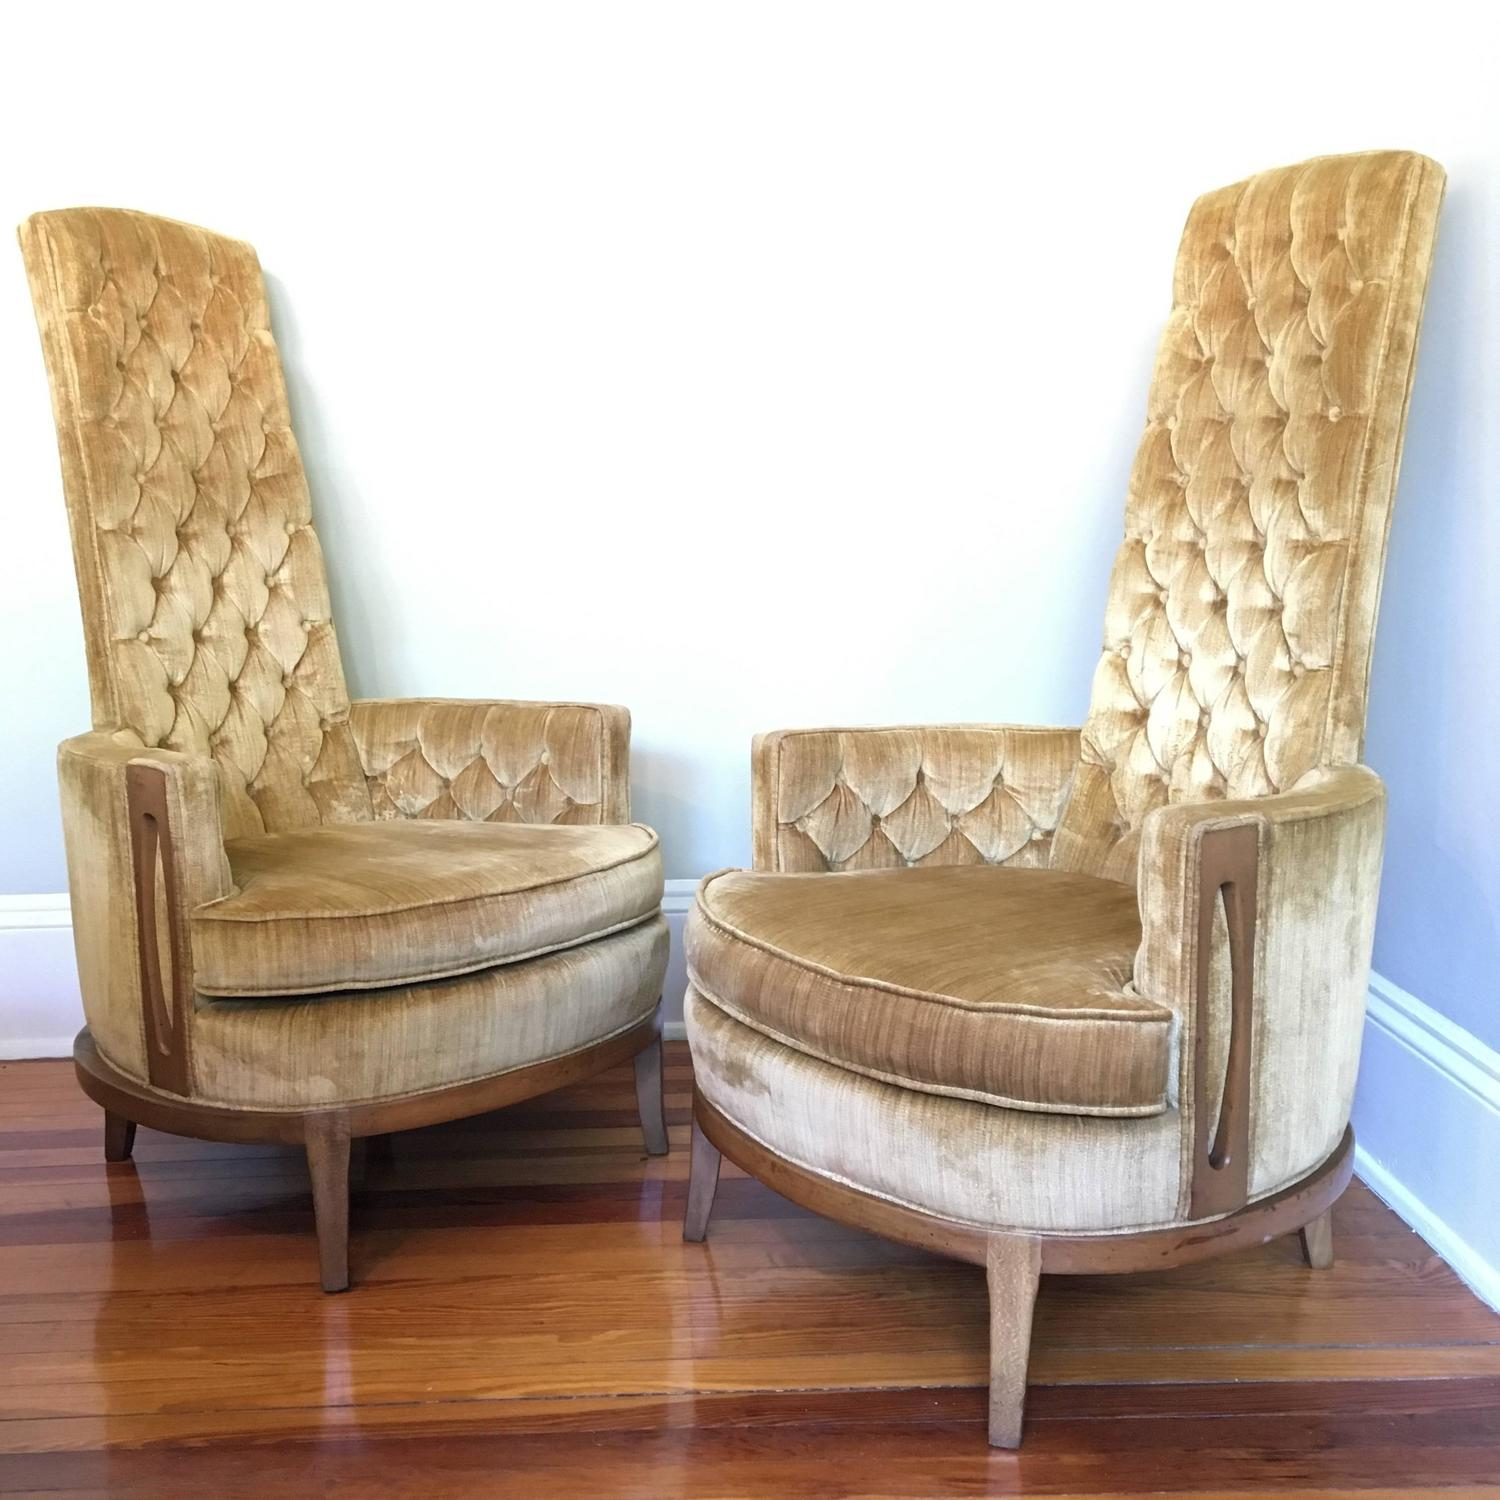 high back tufted chair where to buy bean bag chairs hollywood regency pair of in vintage